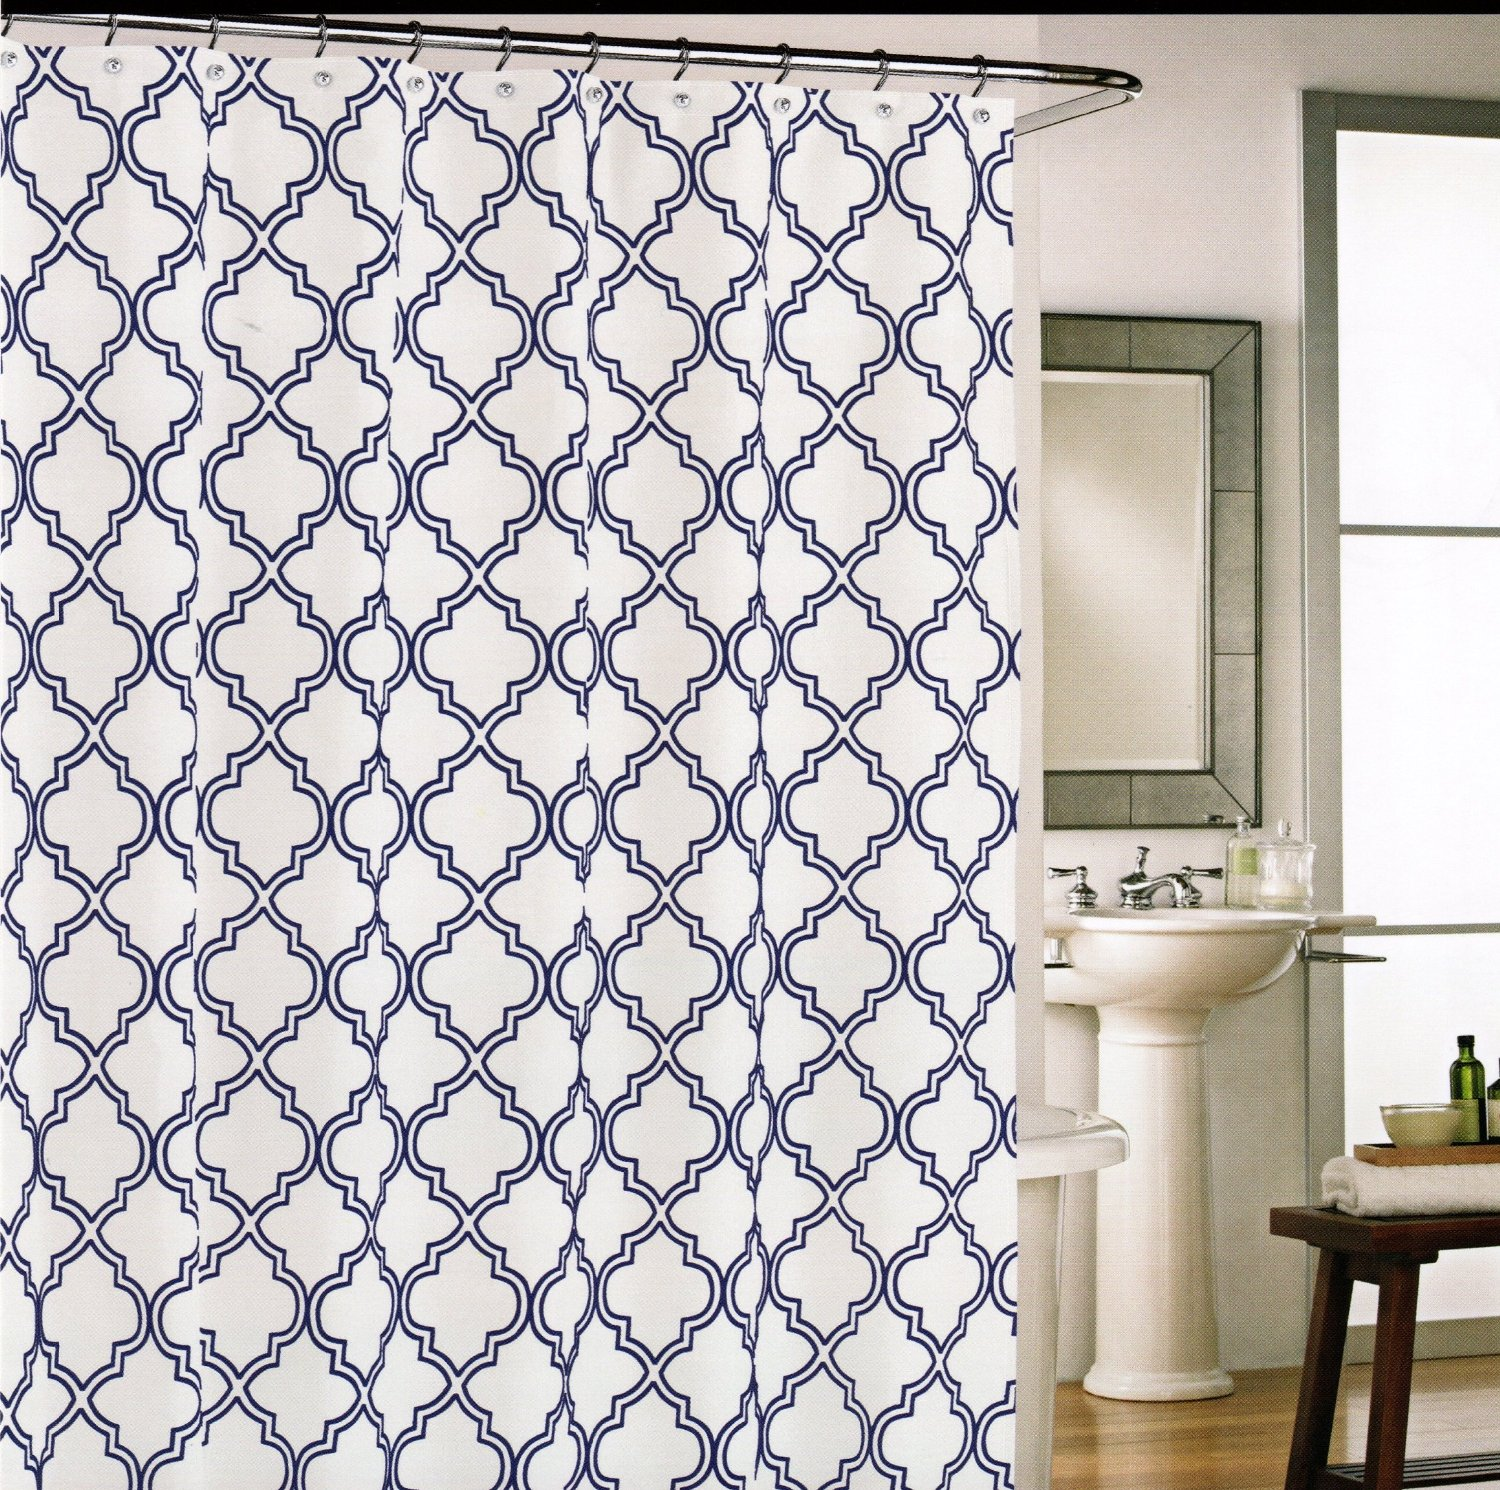 Cynthia Rowley Shower Curtain - Fabric Shower Curtain Lattice with Moroccan Tile Quatrefoil Navy Blue on White